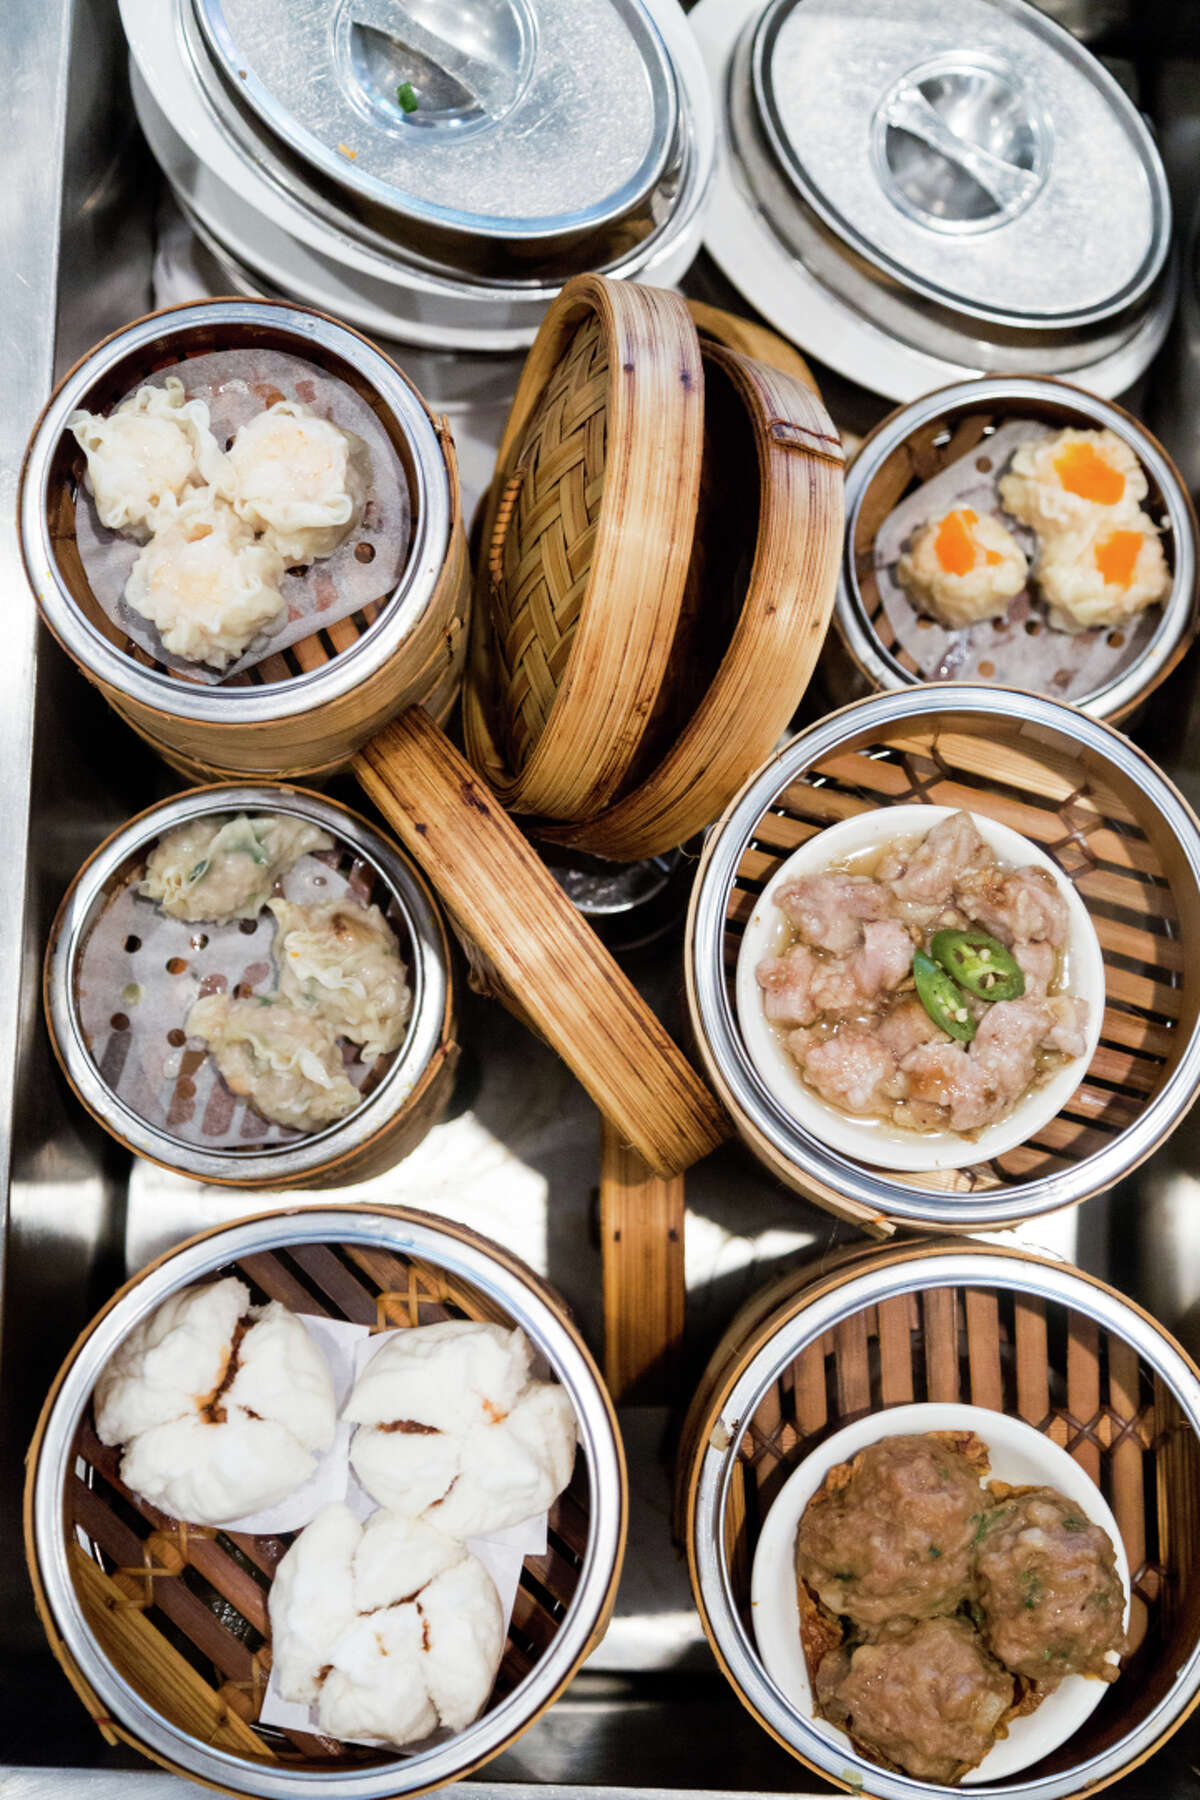 A variety of steam basket items are available as part of City View's dim sum offerings.